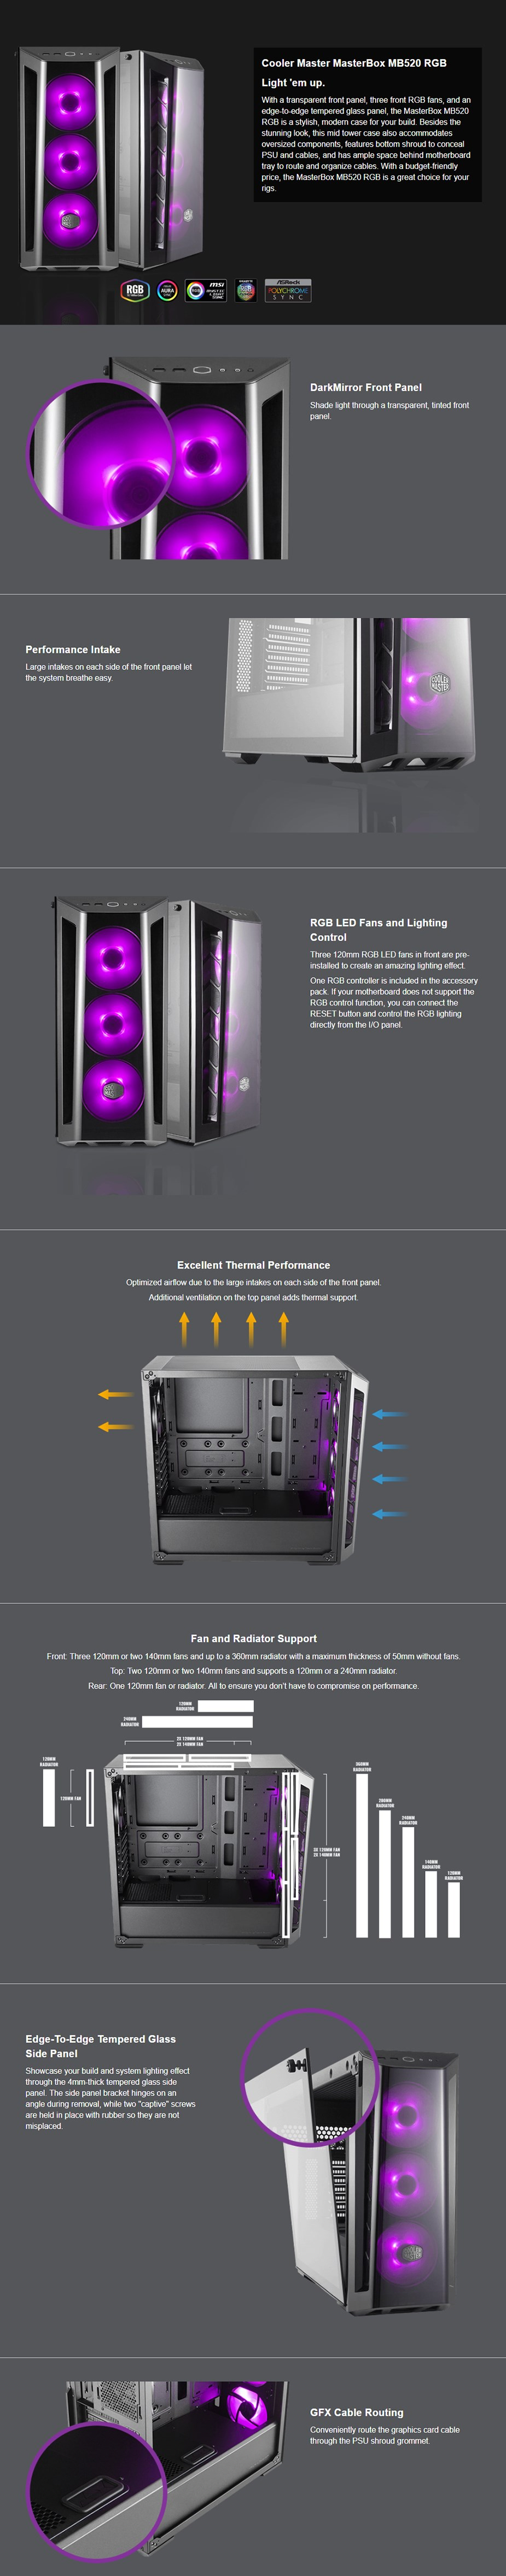 Cooler Master MasterBox MB520 RGB Tempered Glass Mid-Tower ATX Case - Desktop Overview 1